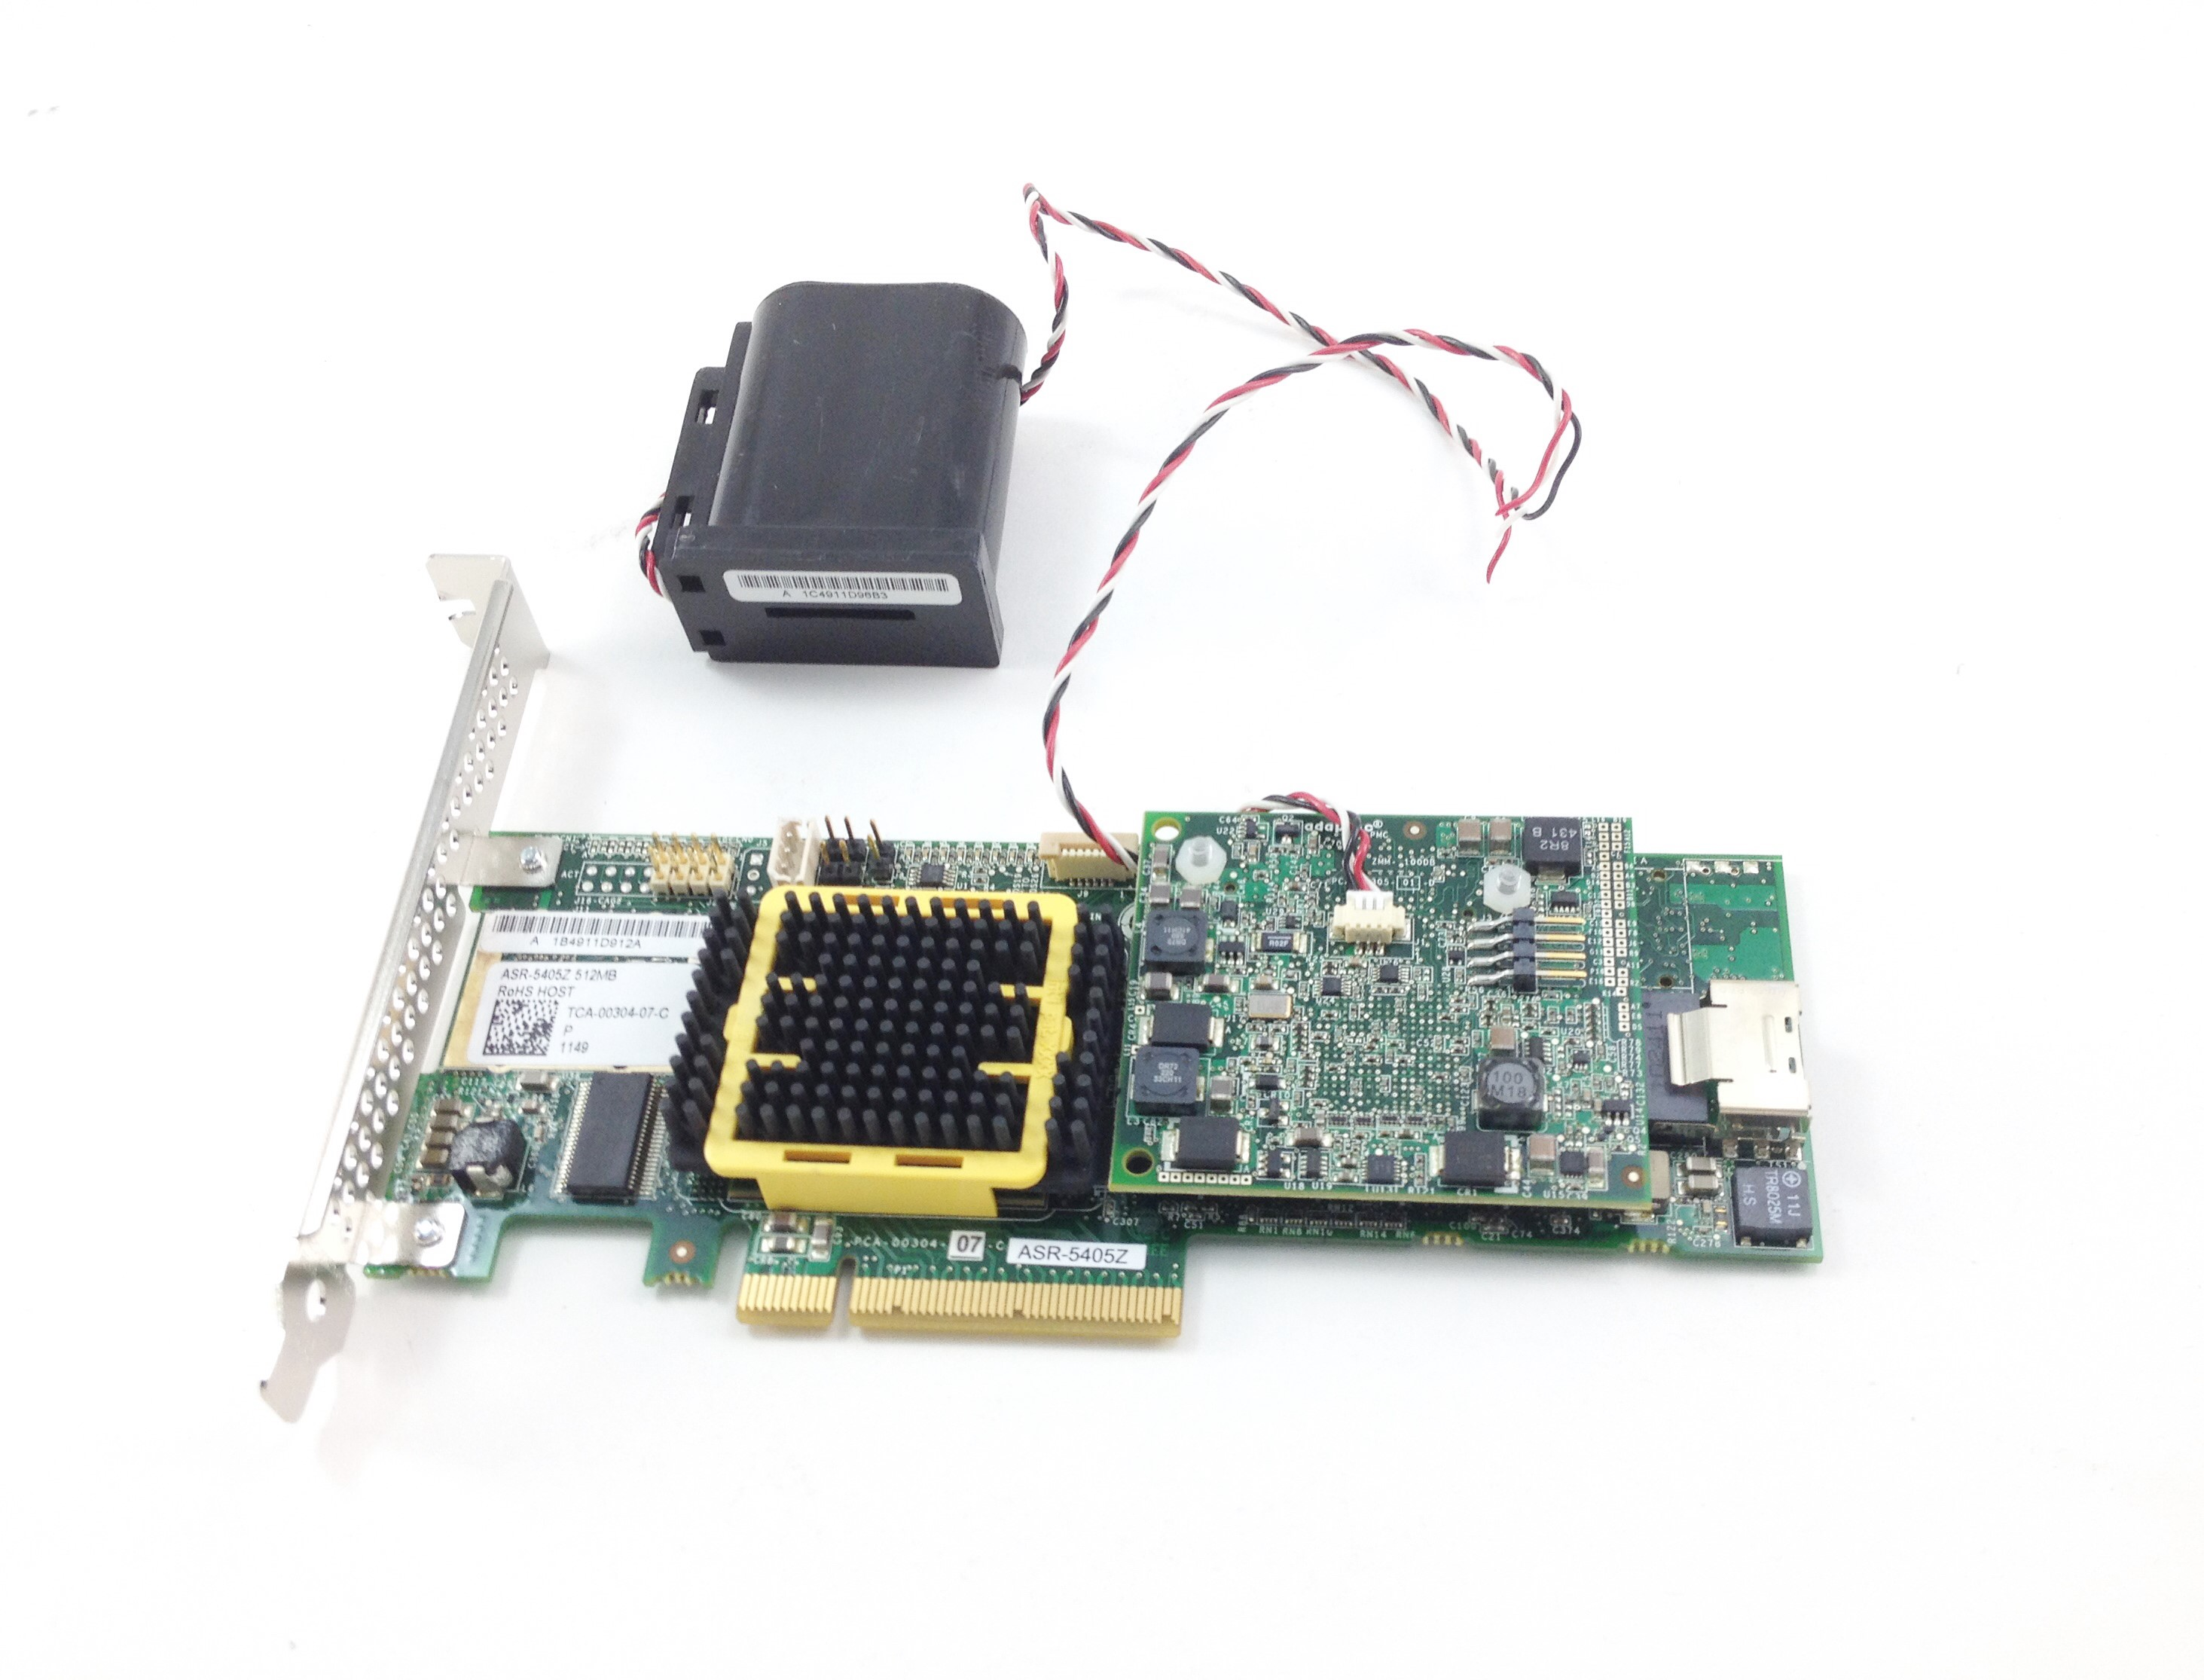 Adaptec 3Gbps 512MB 1-Mini SAS Connector 8-Lane PCI-E Raid Controller (ASR-5405Z)